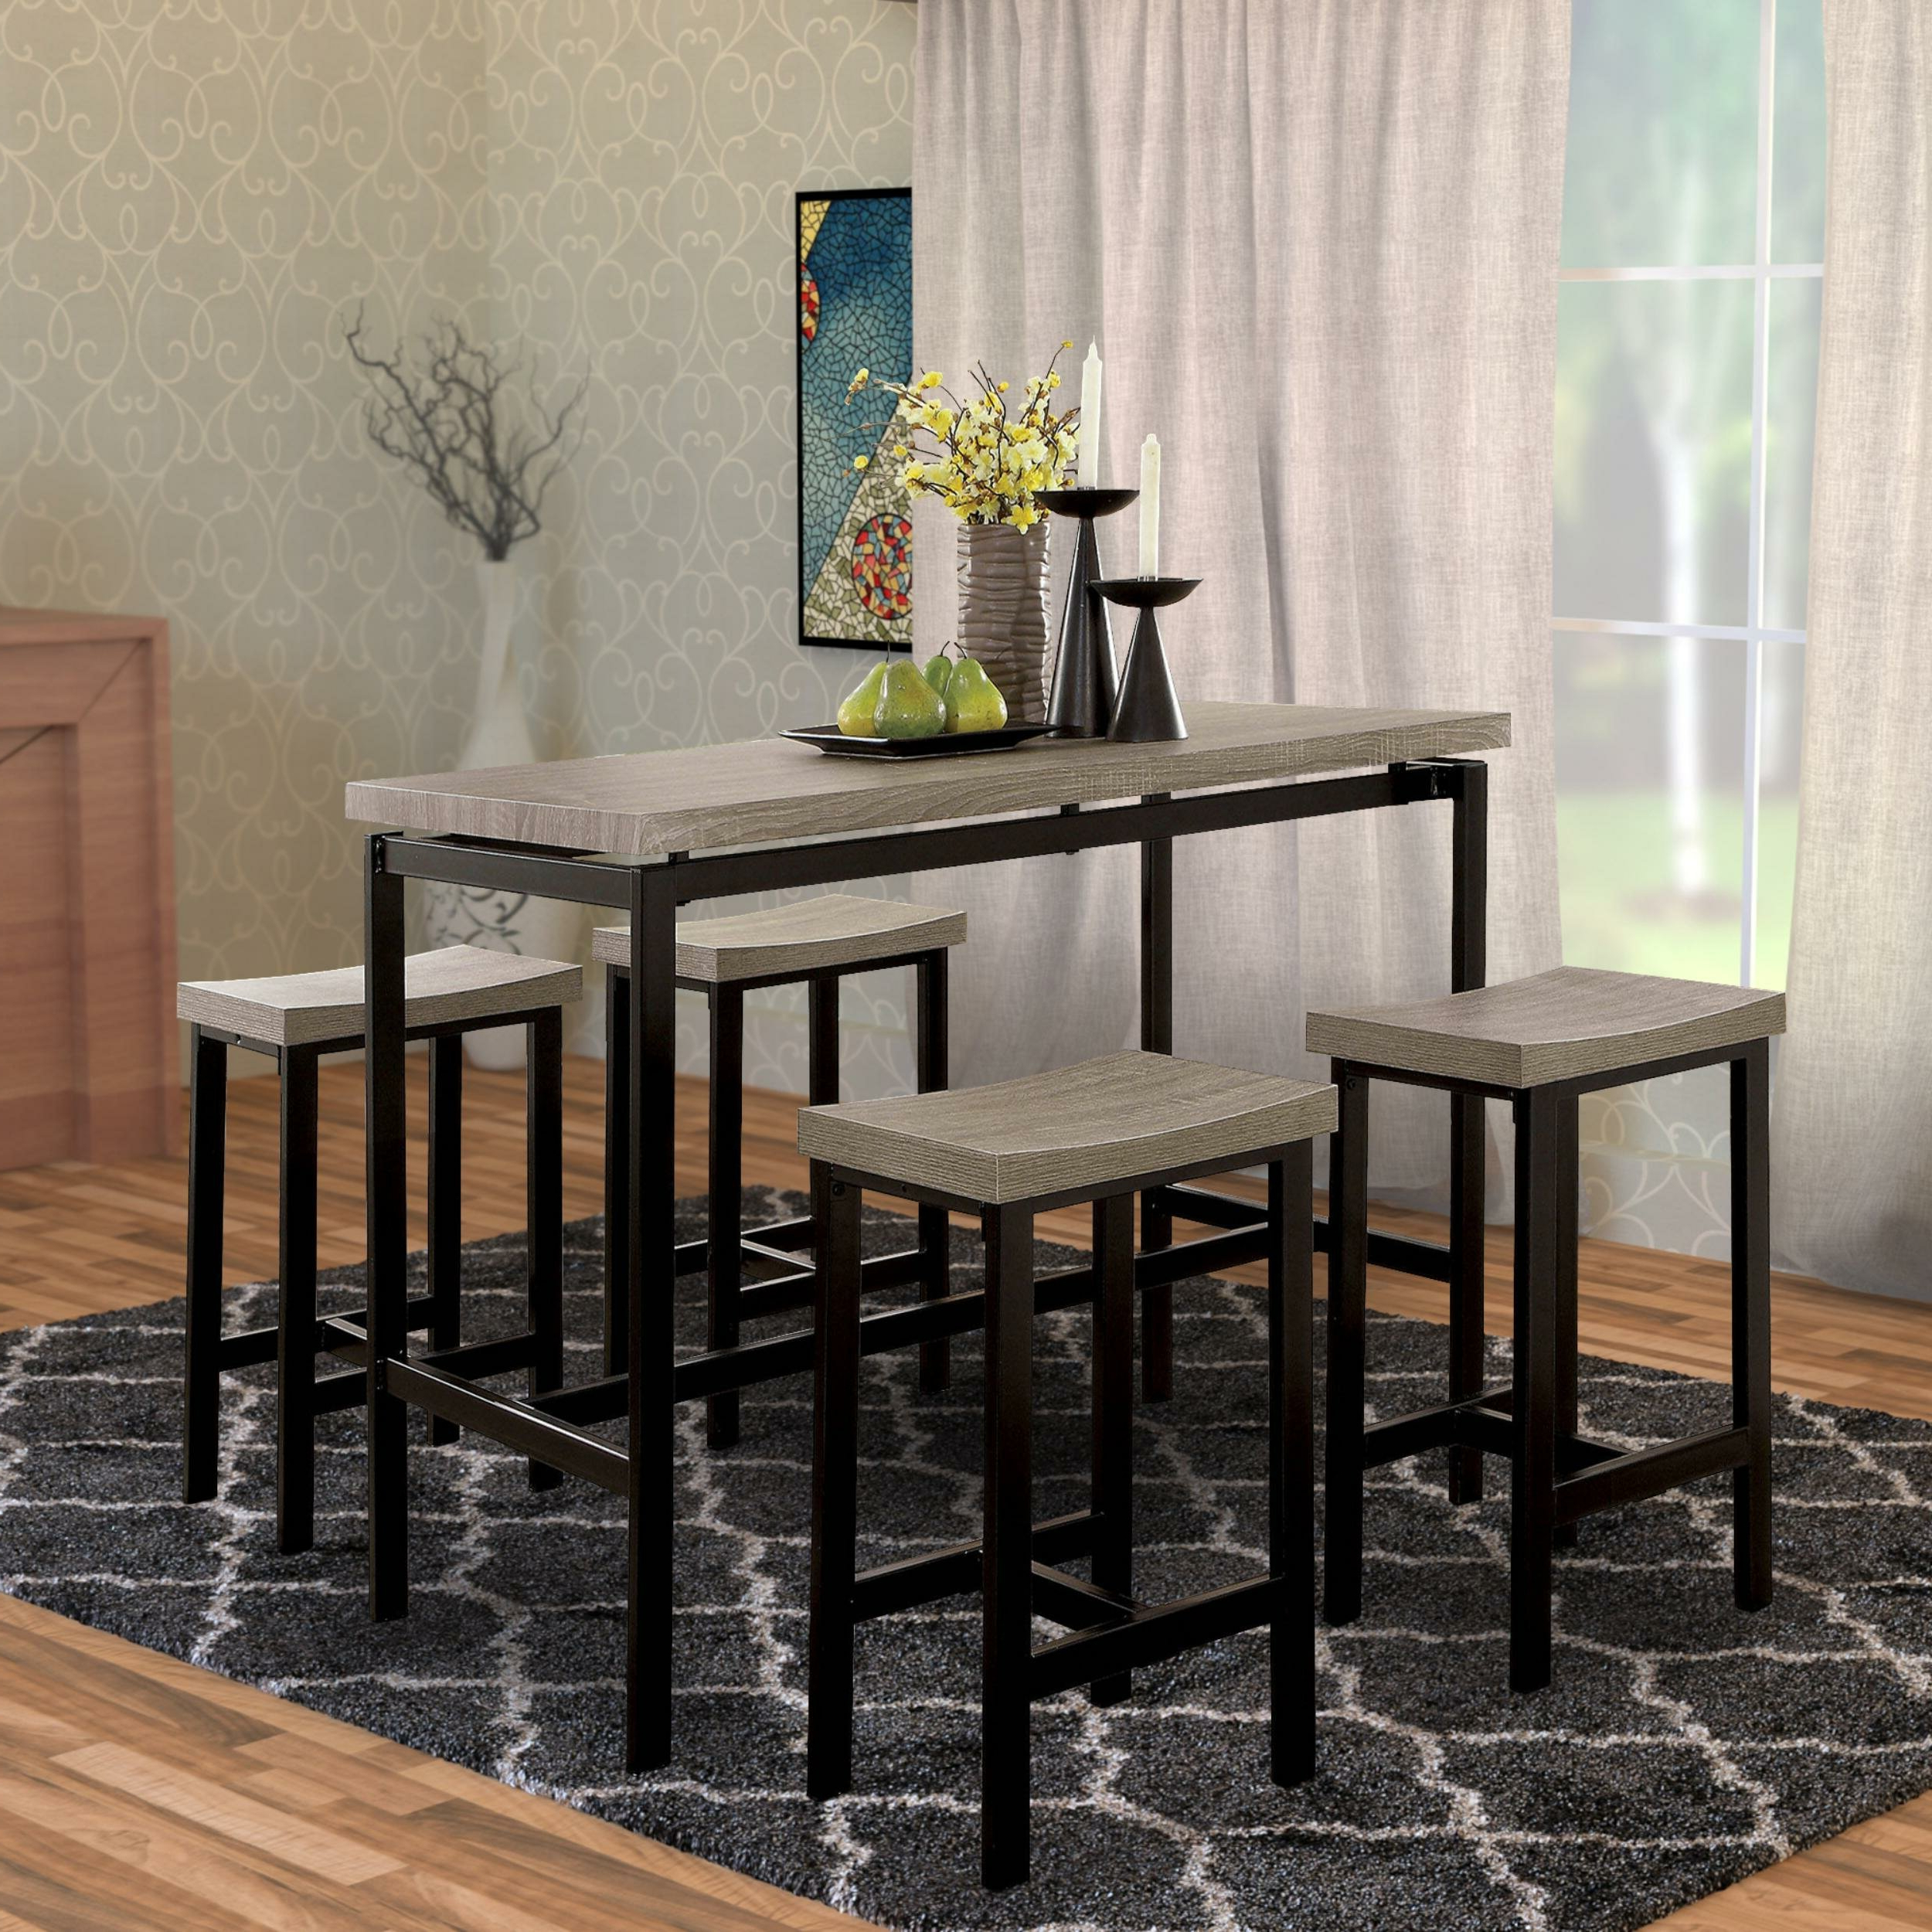 Well Known Mounce Wooden 5 Piece Pub Table Set Throughout Hanska Wooden 5 Piece Counter Height Dining Table Sets (Set Of 5) (View 19 of 20)